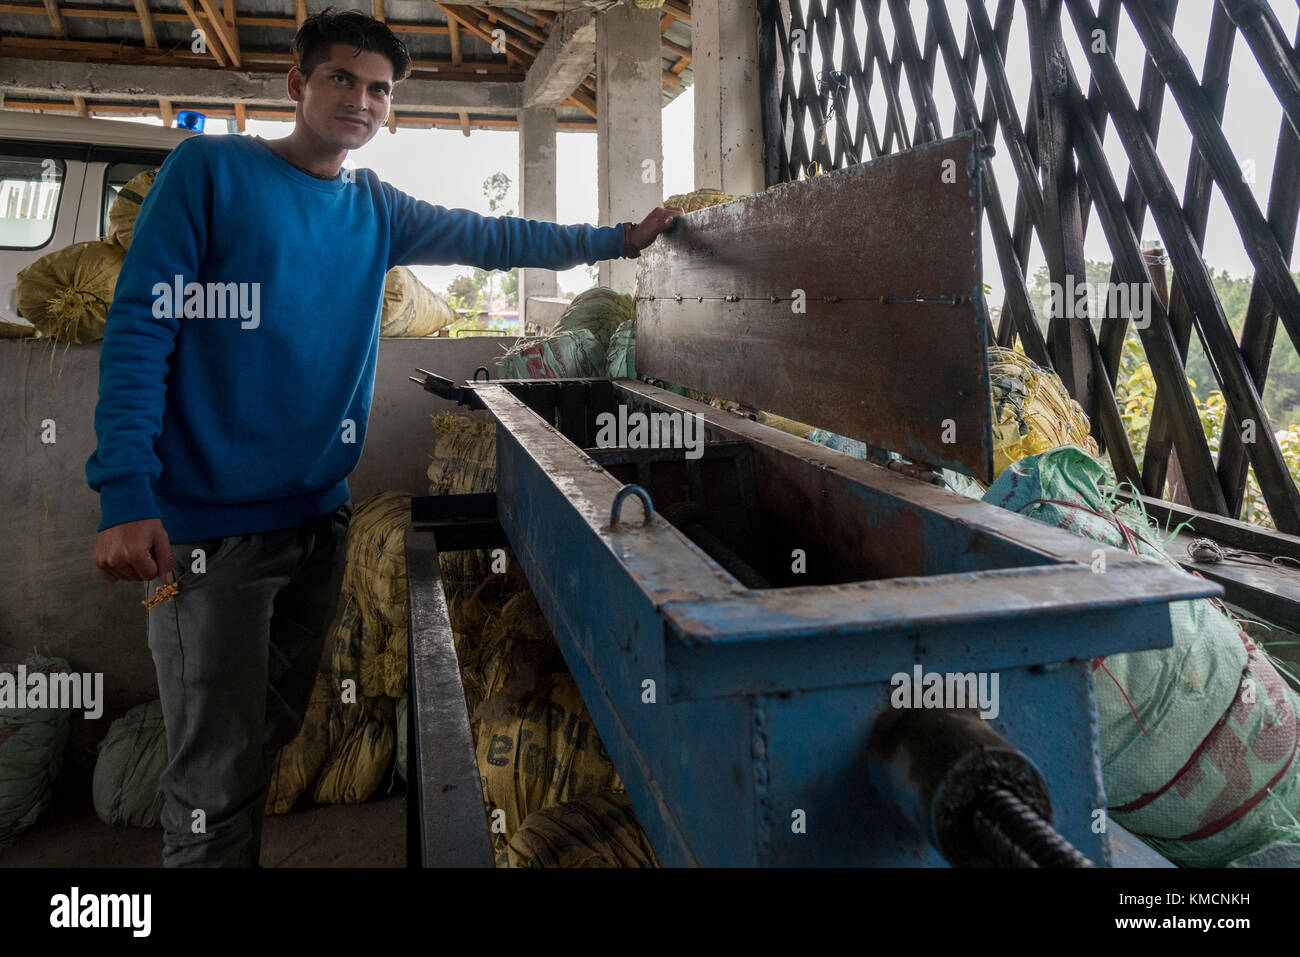 A young Indian boy demonstrates the use of waste plastic management machine in a village. - Stock Image